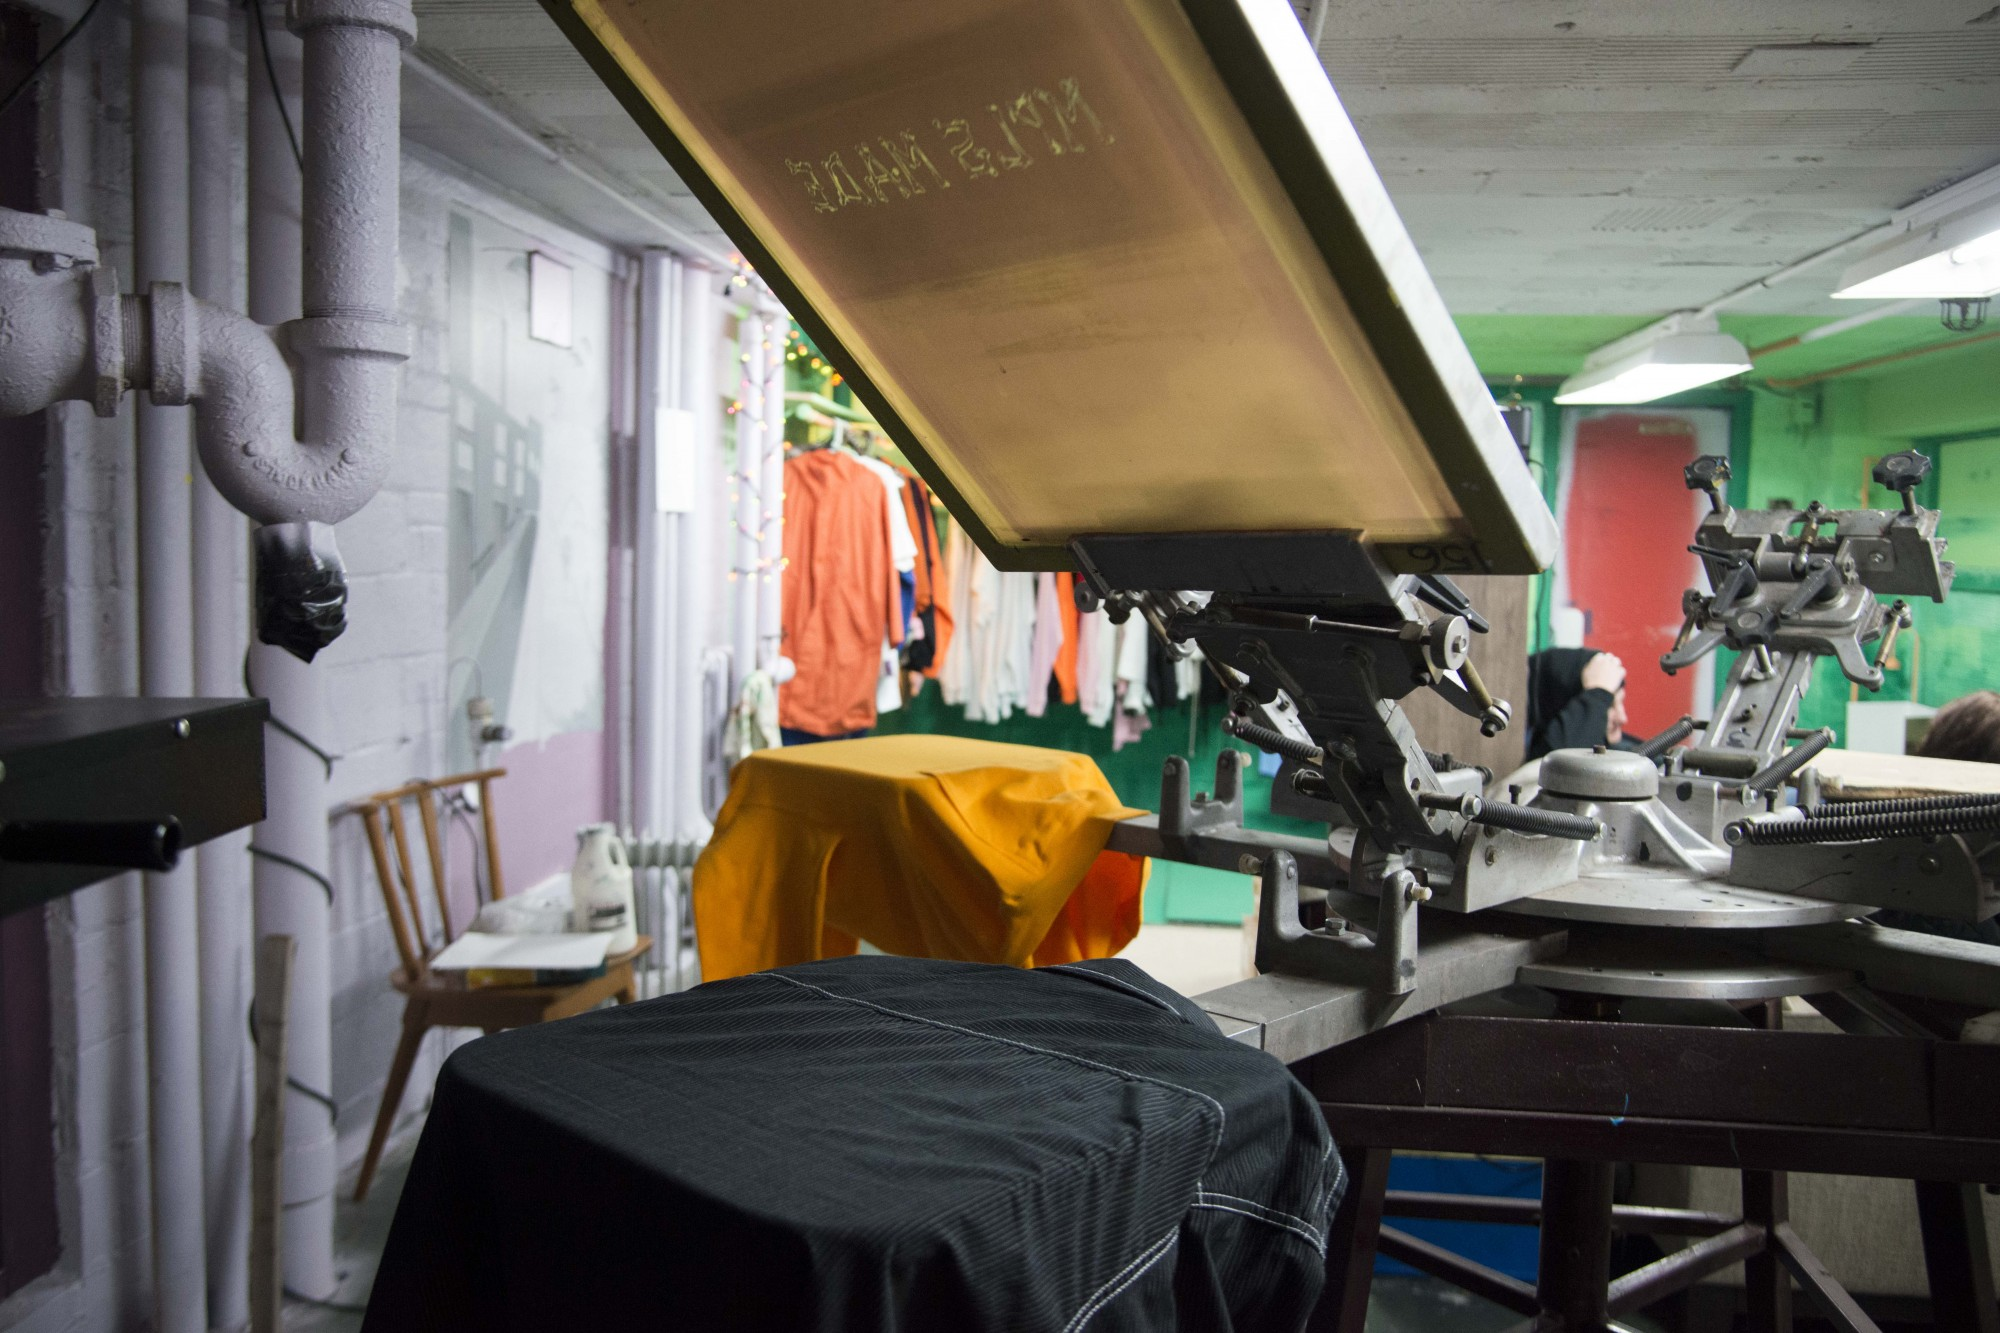 A screen printing press as seen in Elena Bagne's new studio space in Northeast Minneapolis on Wednesday, Nov. 20. Bagne started MPLS MADE over two years ago as a custom hand-drawn and printed streetwear brand that uses thrifted clothing in an effort to be a sustainable.